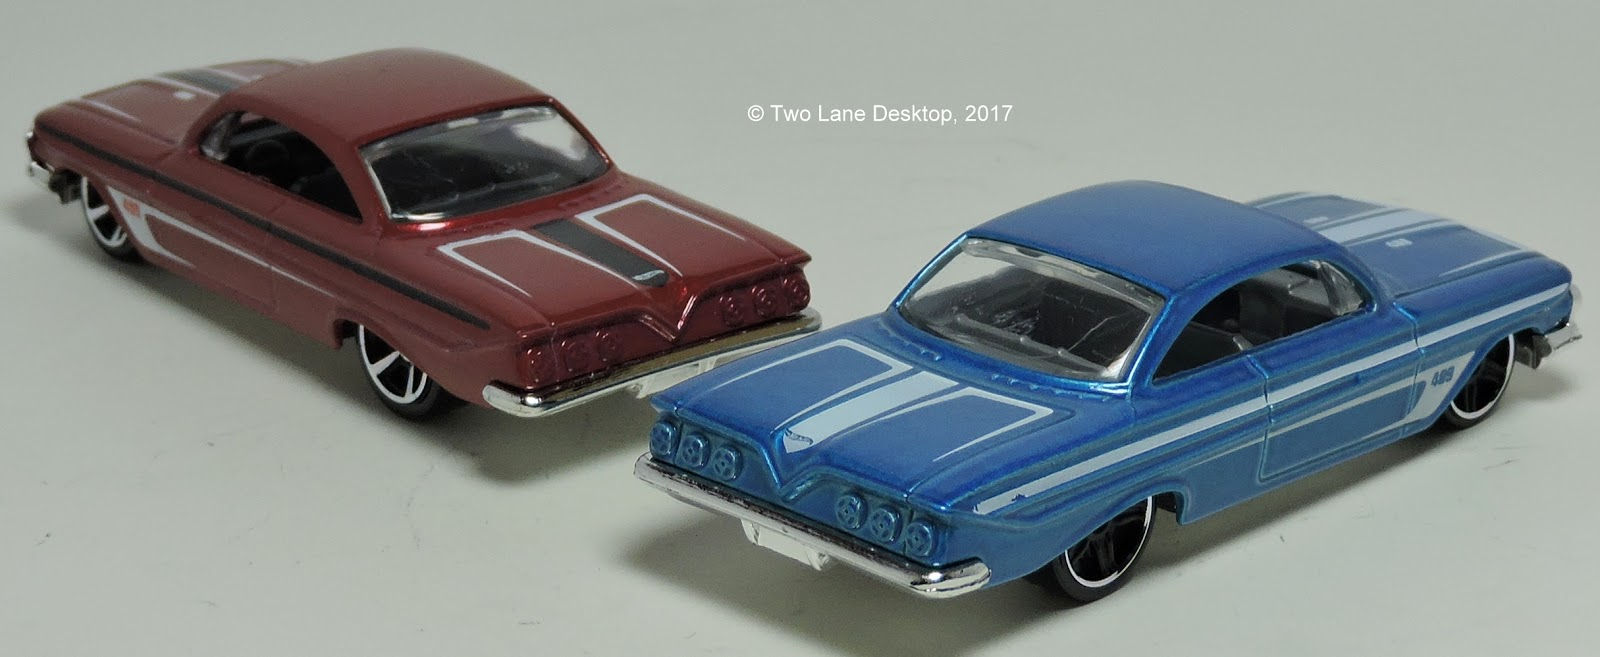 In 2012 hot wheels released the 1961 impala casting and it has big shoes to fill after the 1962 bel air casting is one of my favorites and a perfectly done